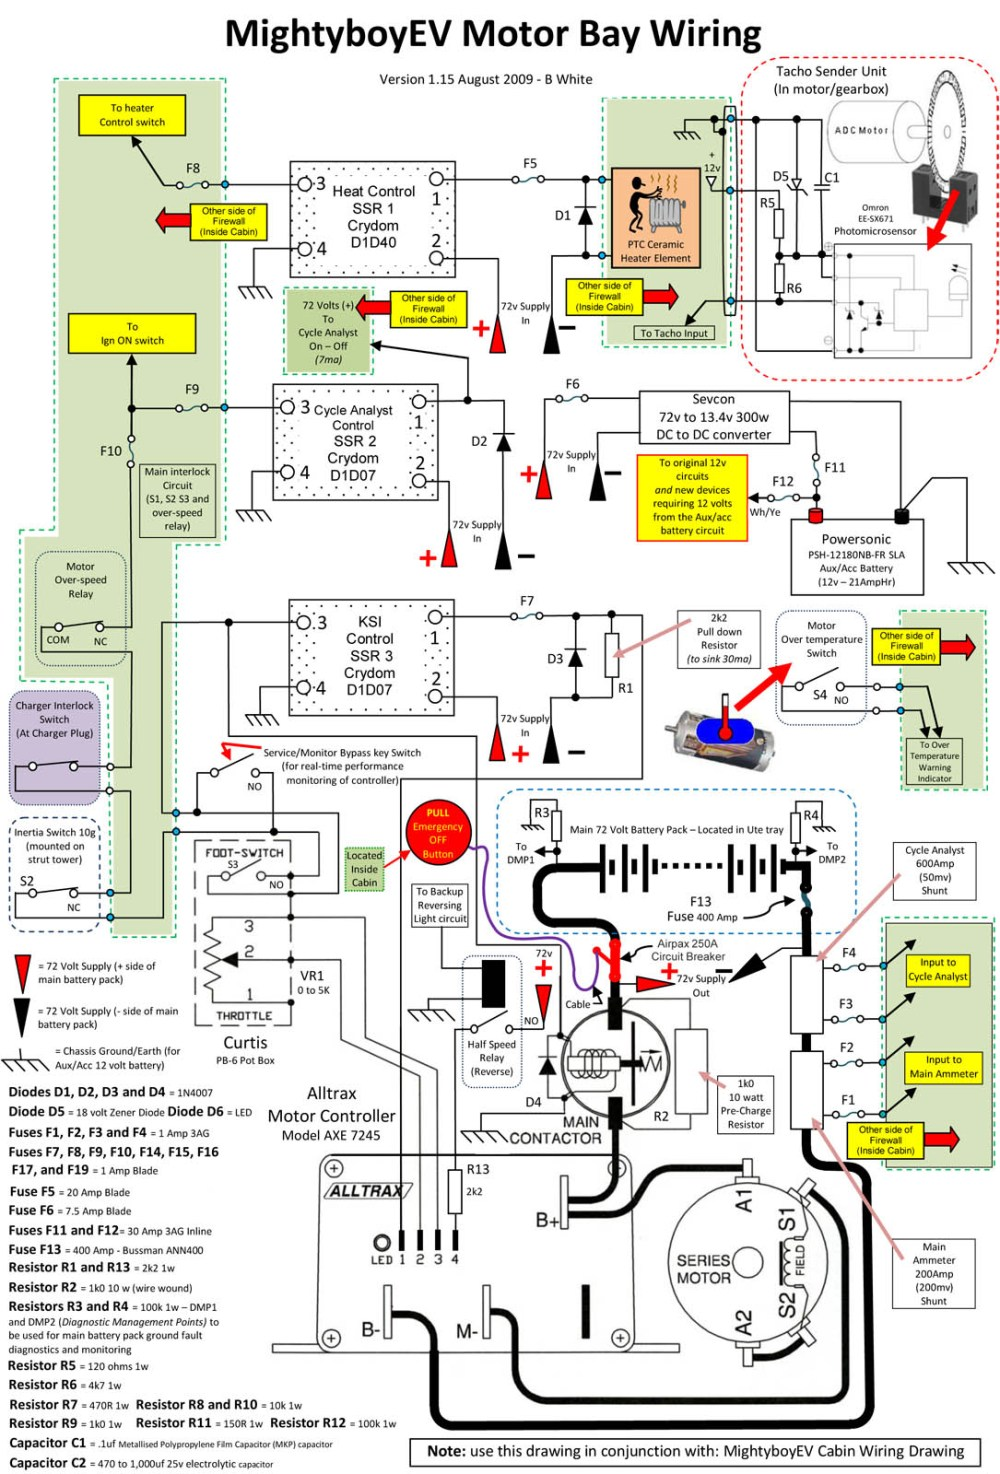 medium resolution of wiring diagram motor bay wiring diagram symbols 72v wiring diagram